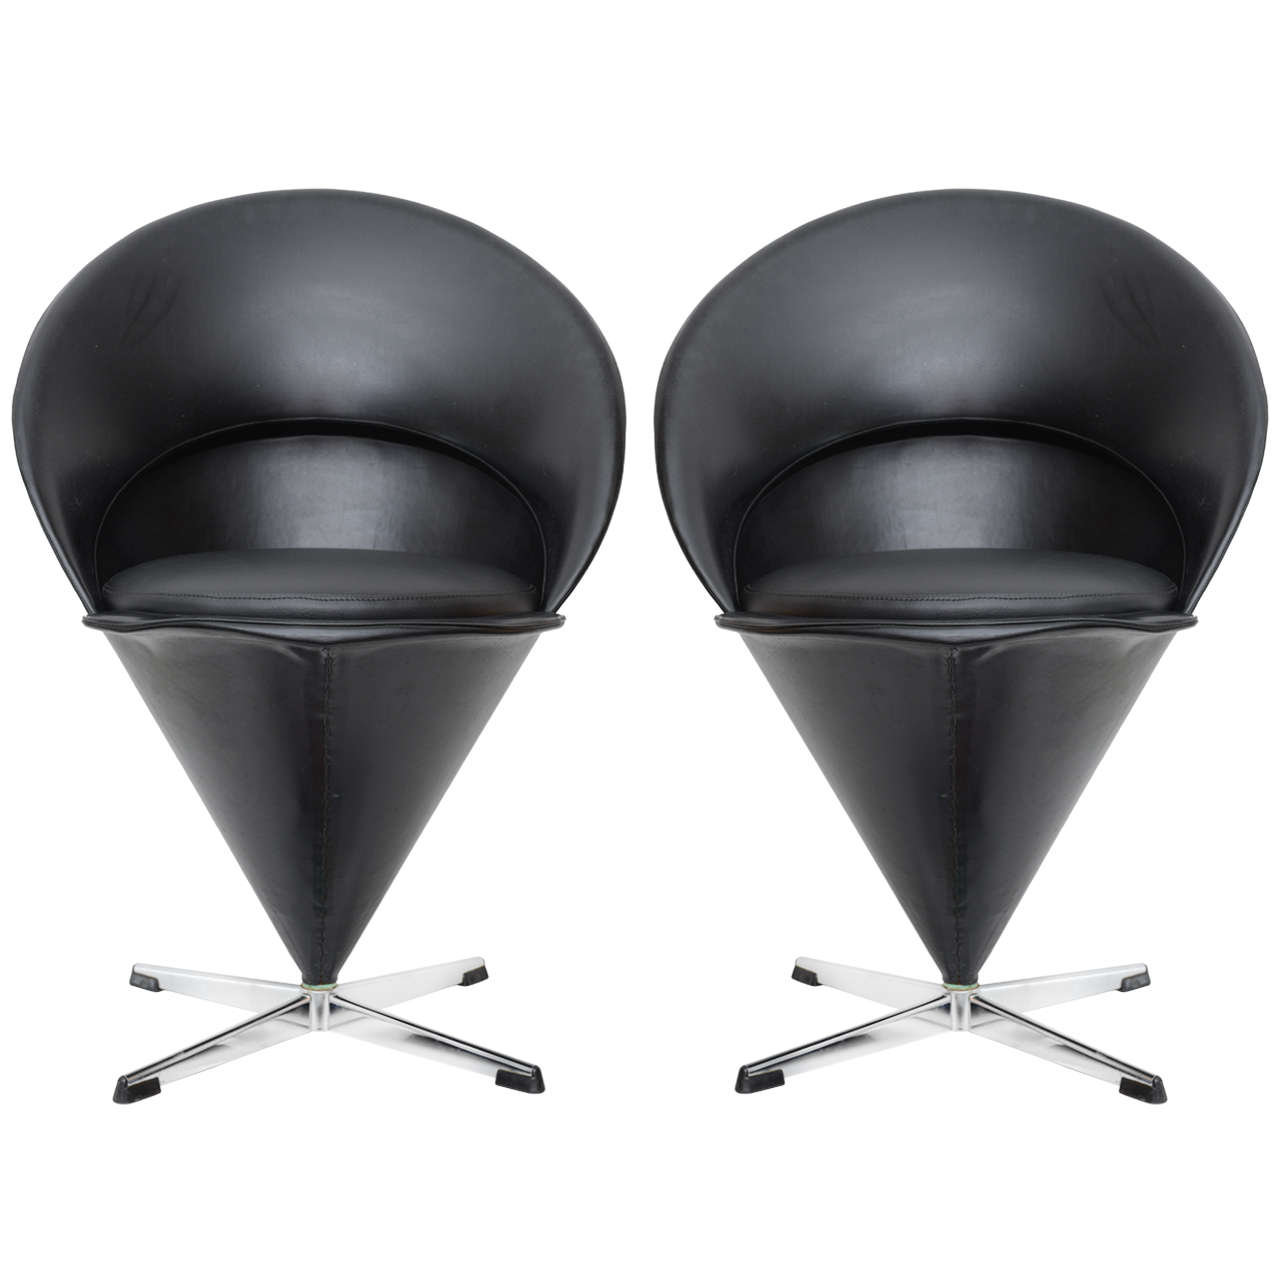 original mid century modern verner panton cone chairs for. Black Bedroom Furniture Sets. Home Design Ideas